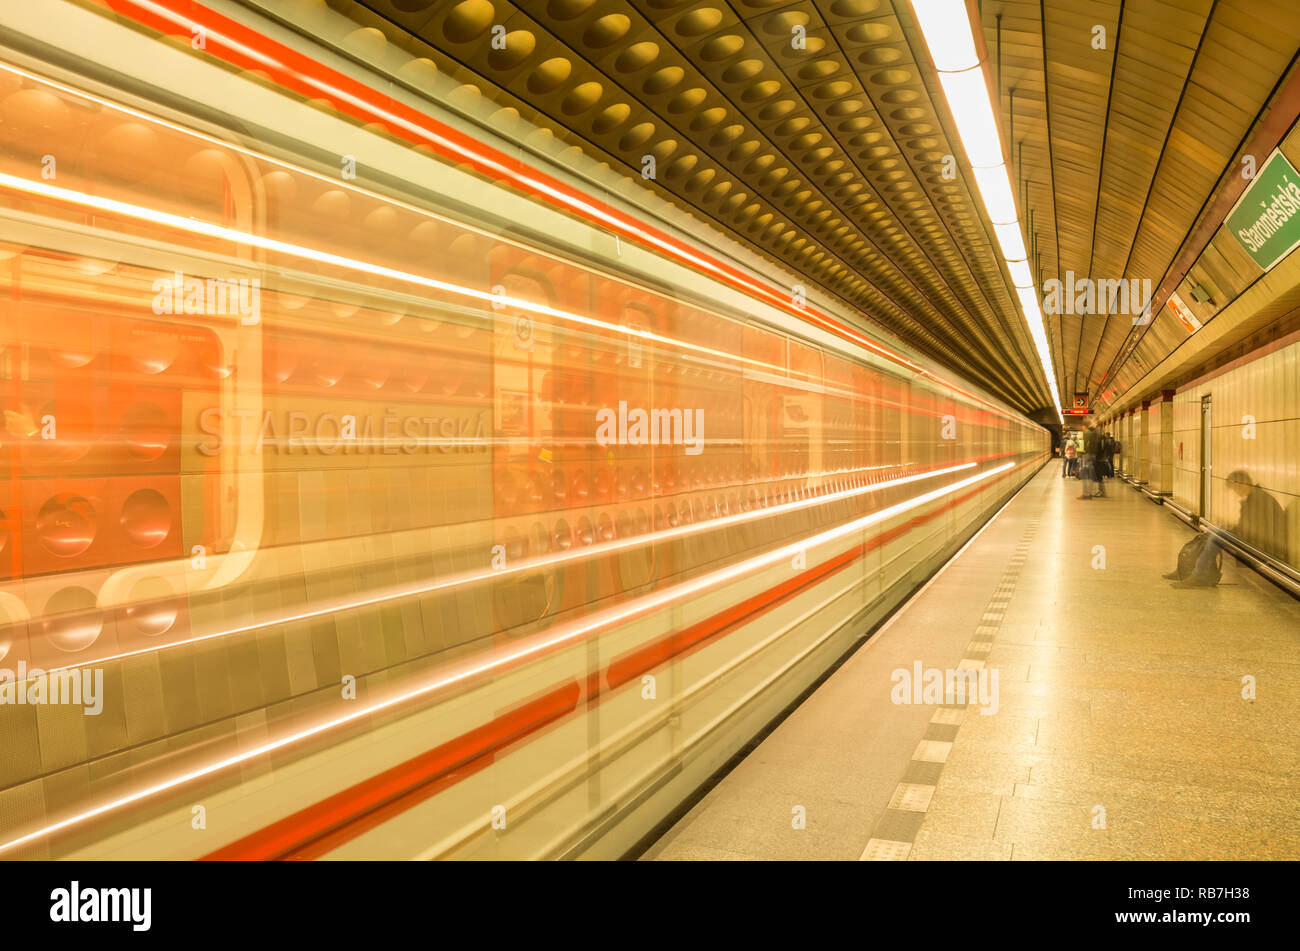 Staroměstská metro station, Prague Metro, Czech Republic. Stock Photo